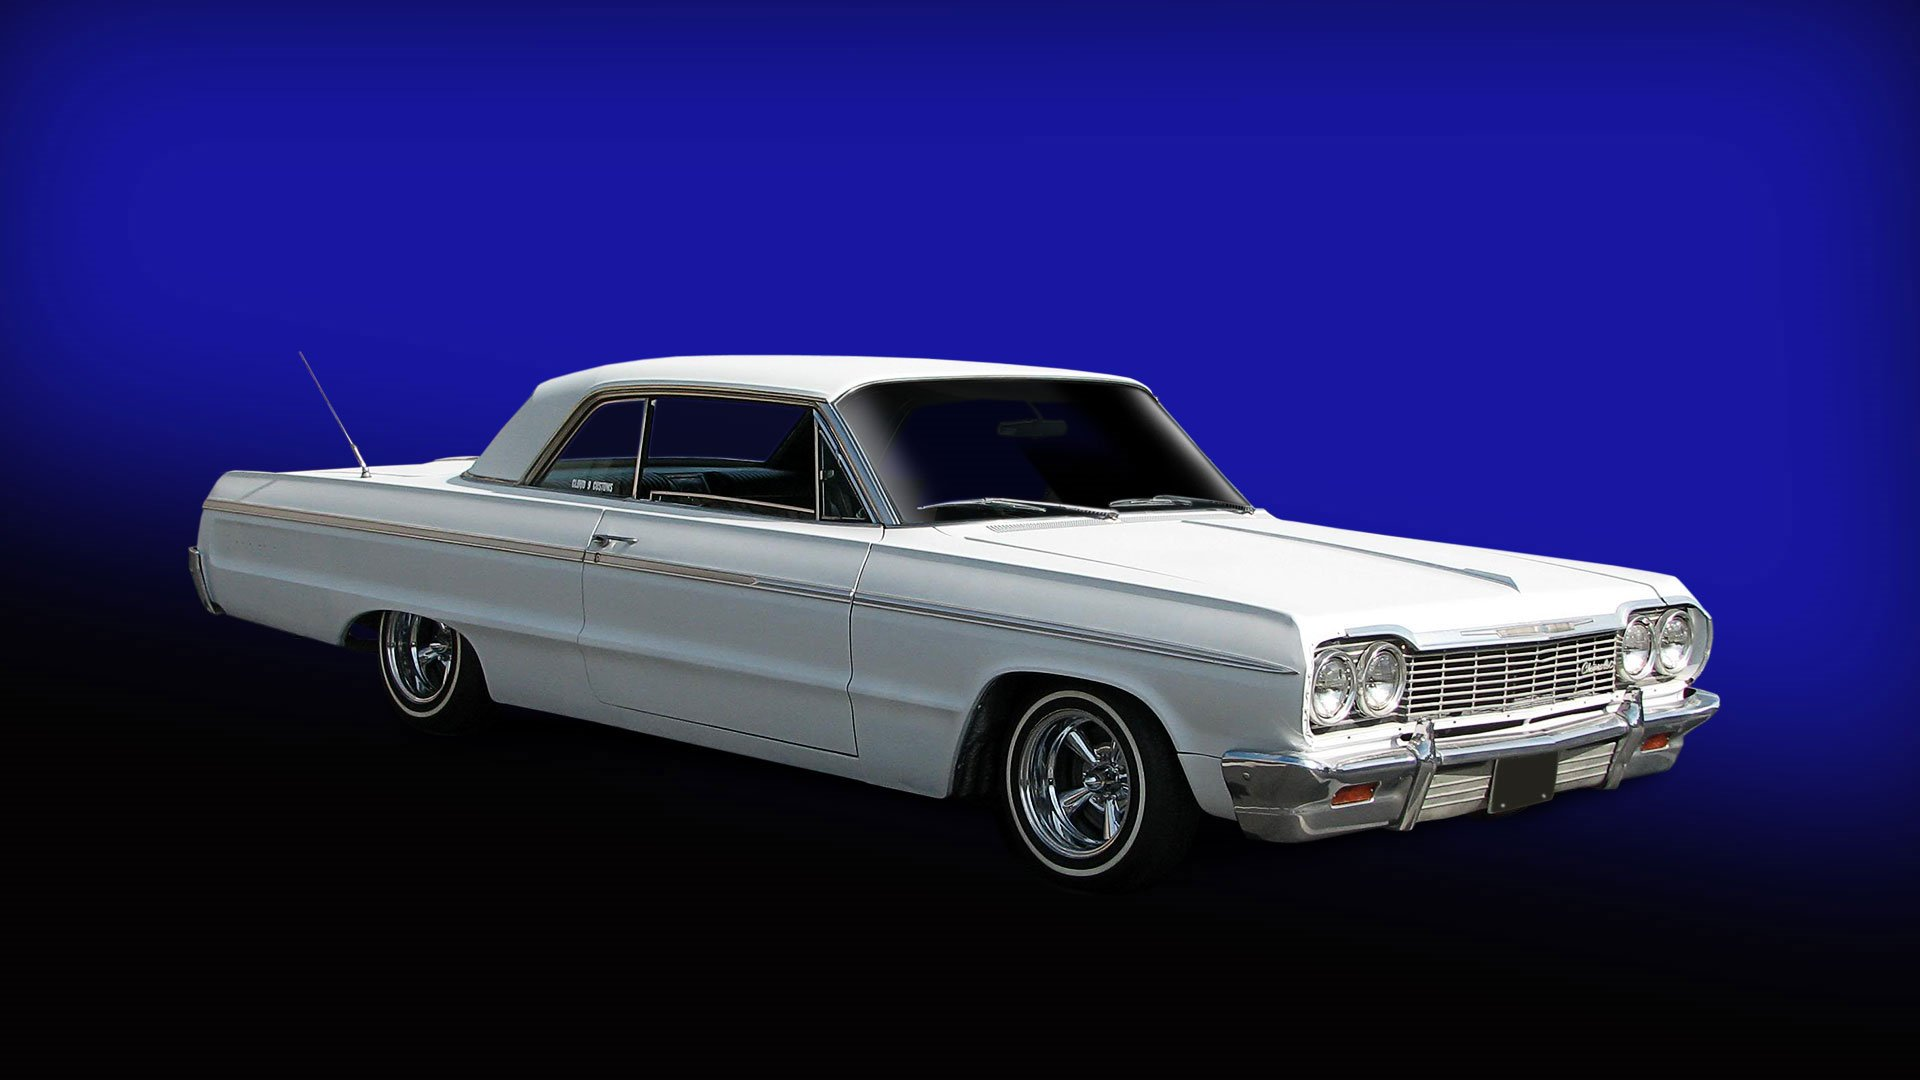 chevrolet-impala-chevy-wallpapers-background-desktop-wallpaper-pic